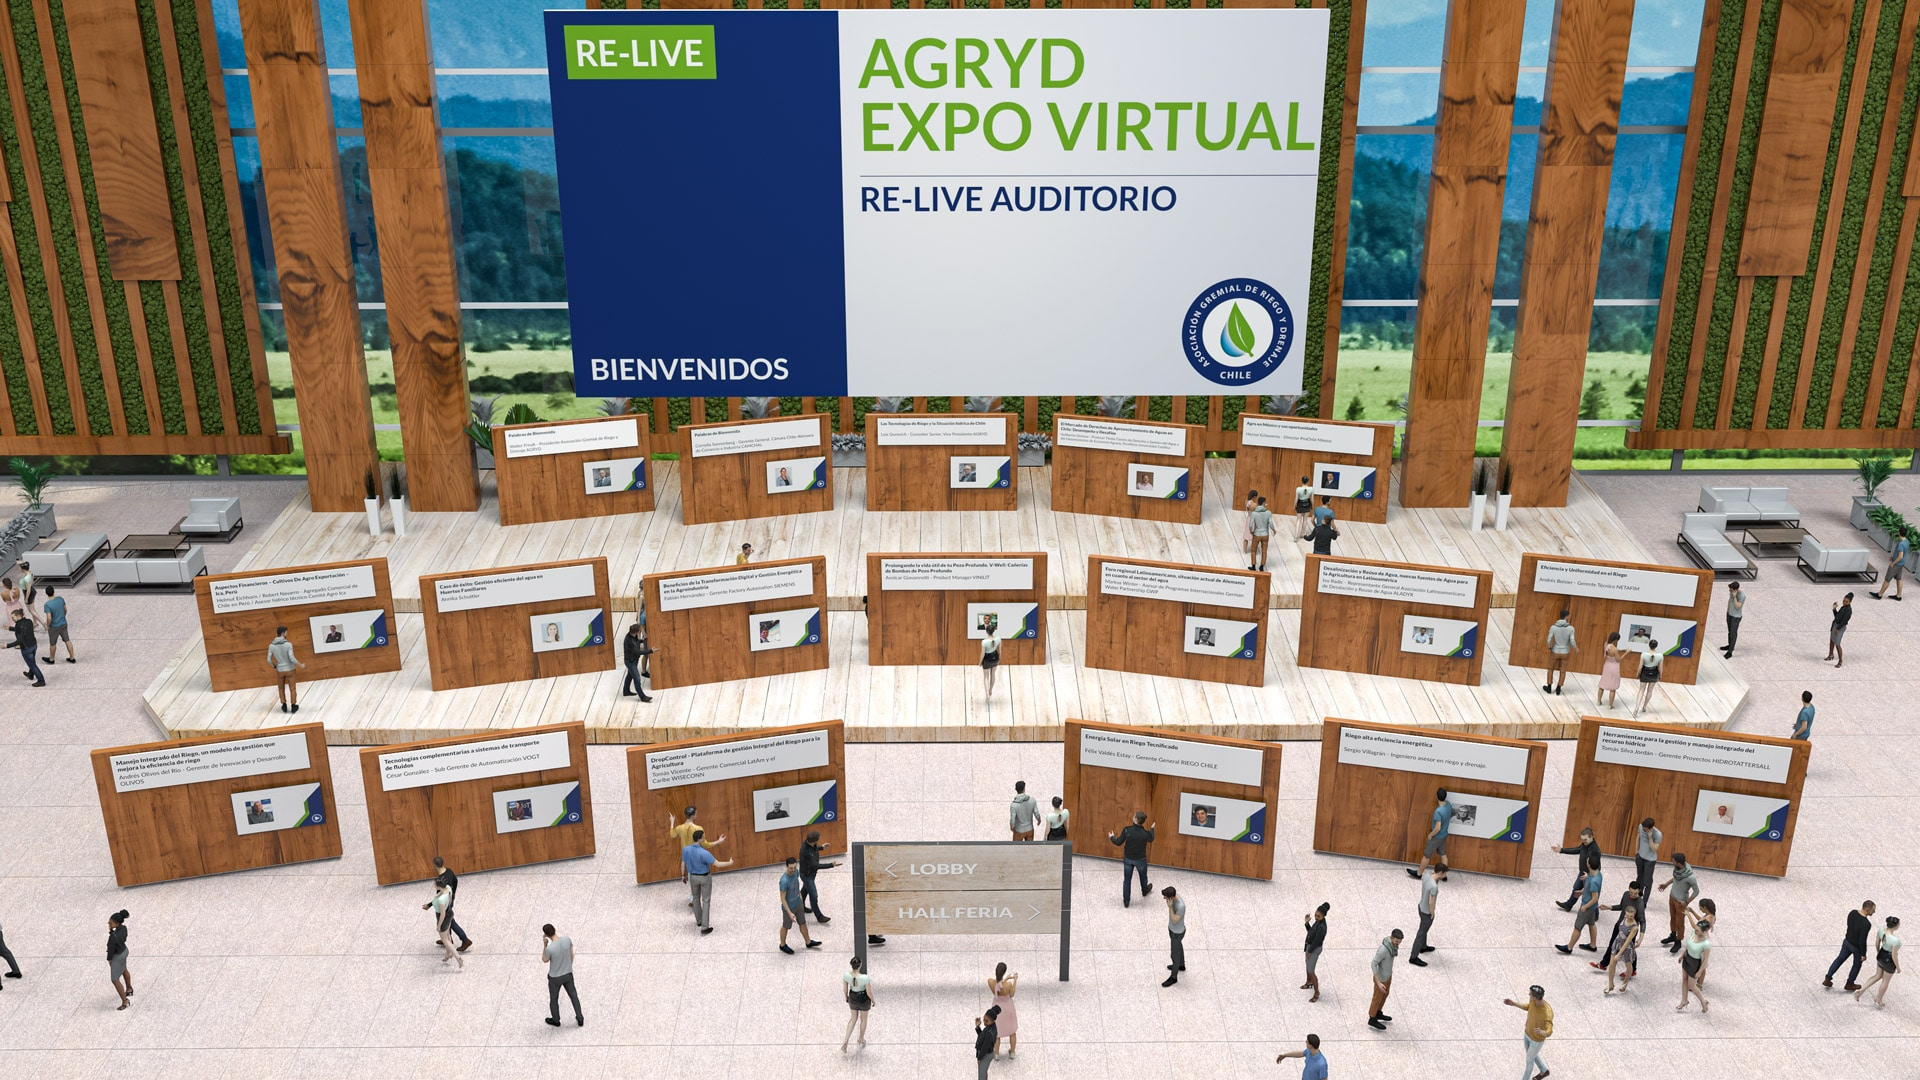 relive auditorium of the Agryd Expo Virtual